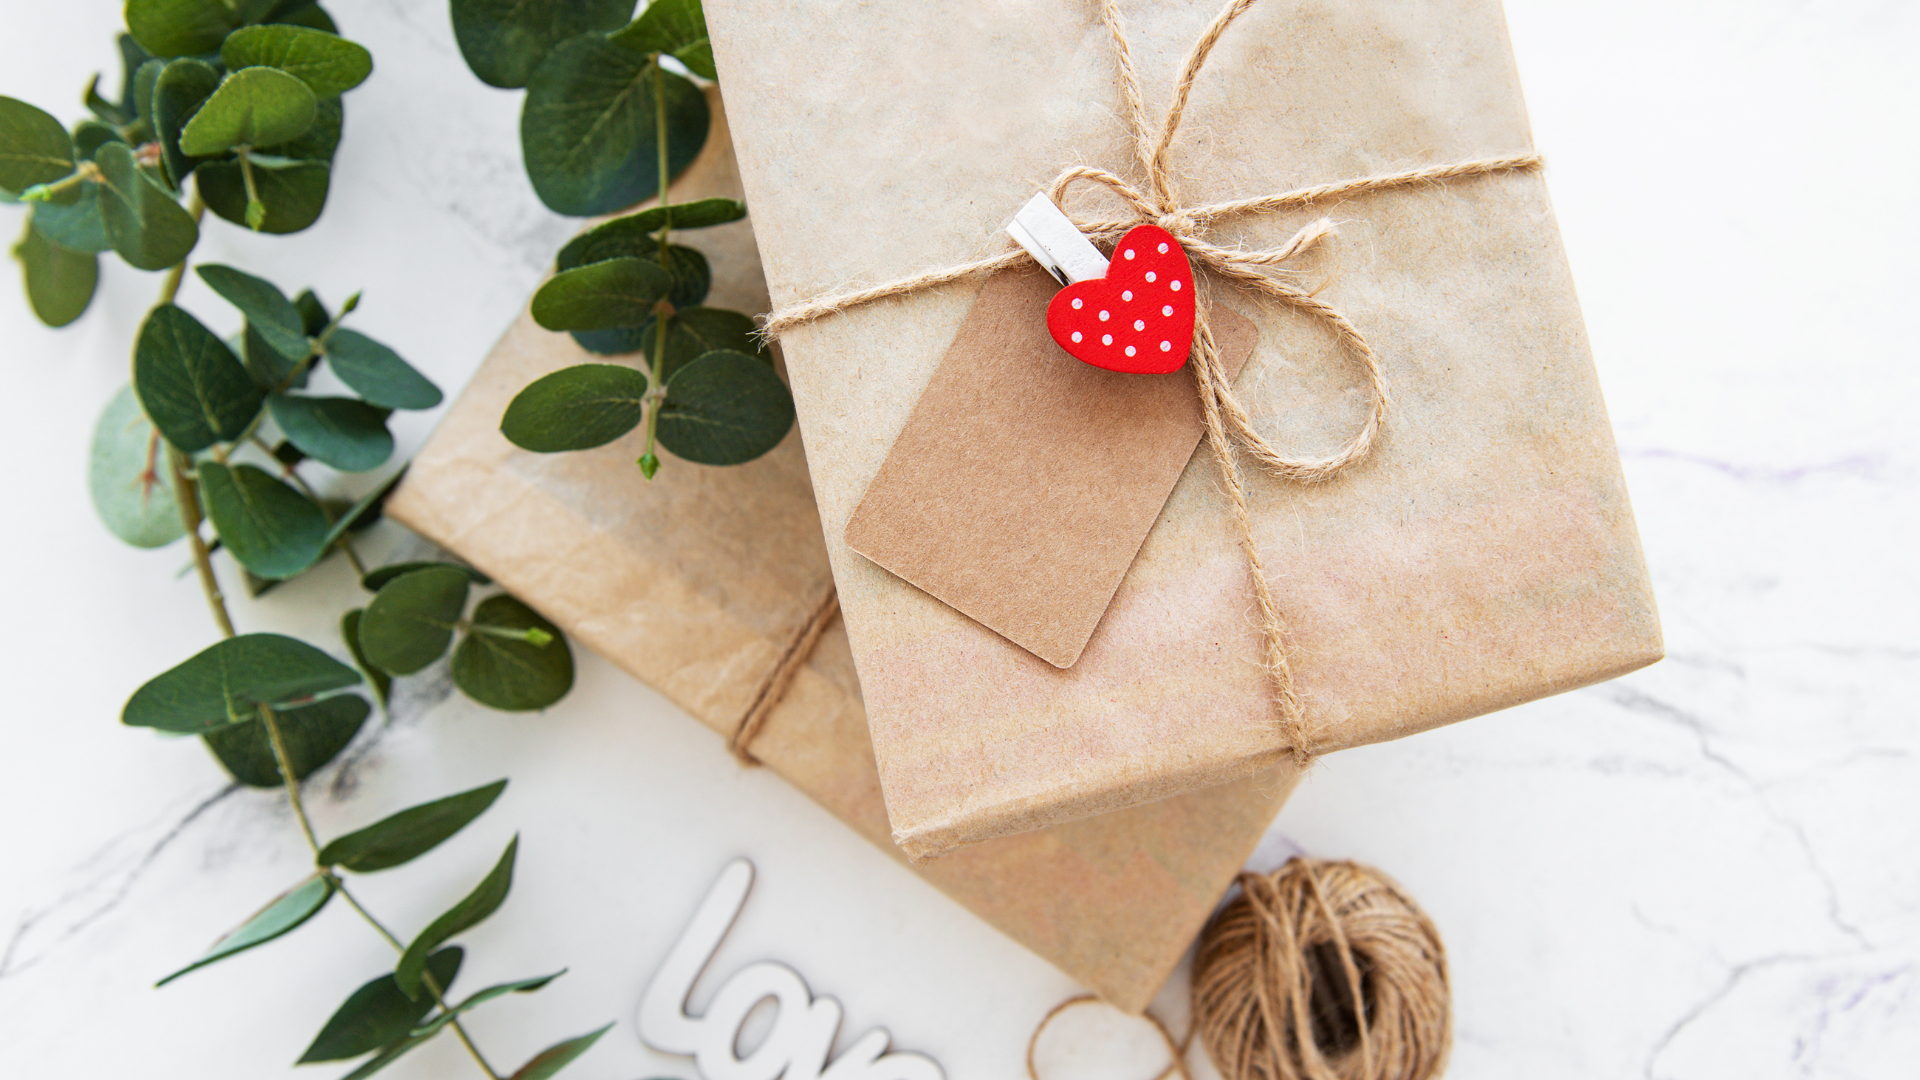 Corporate Gifting - Twine wrapped gift